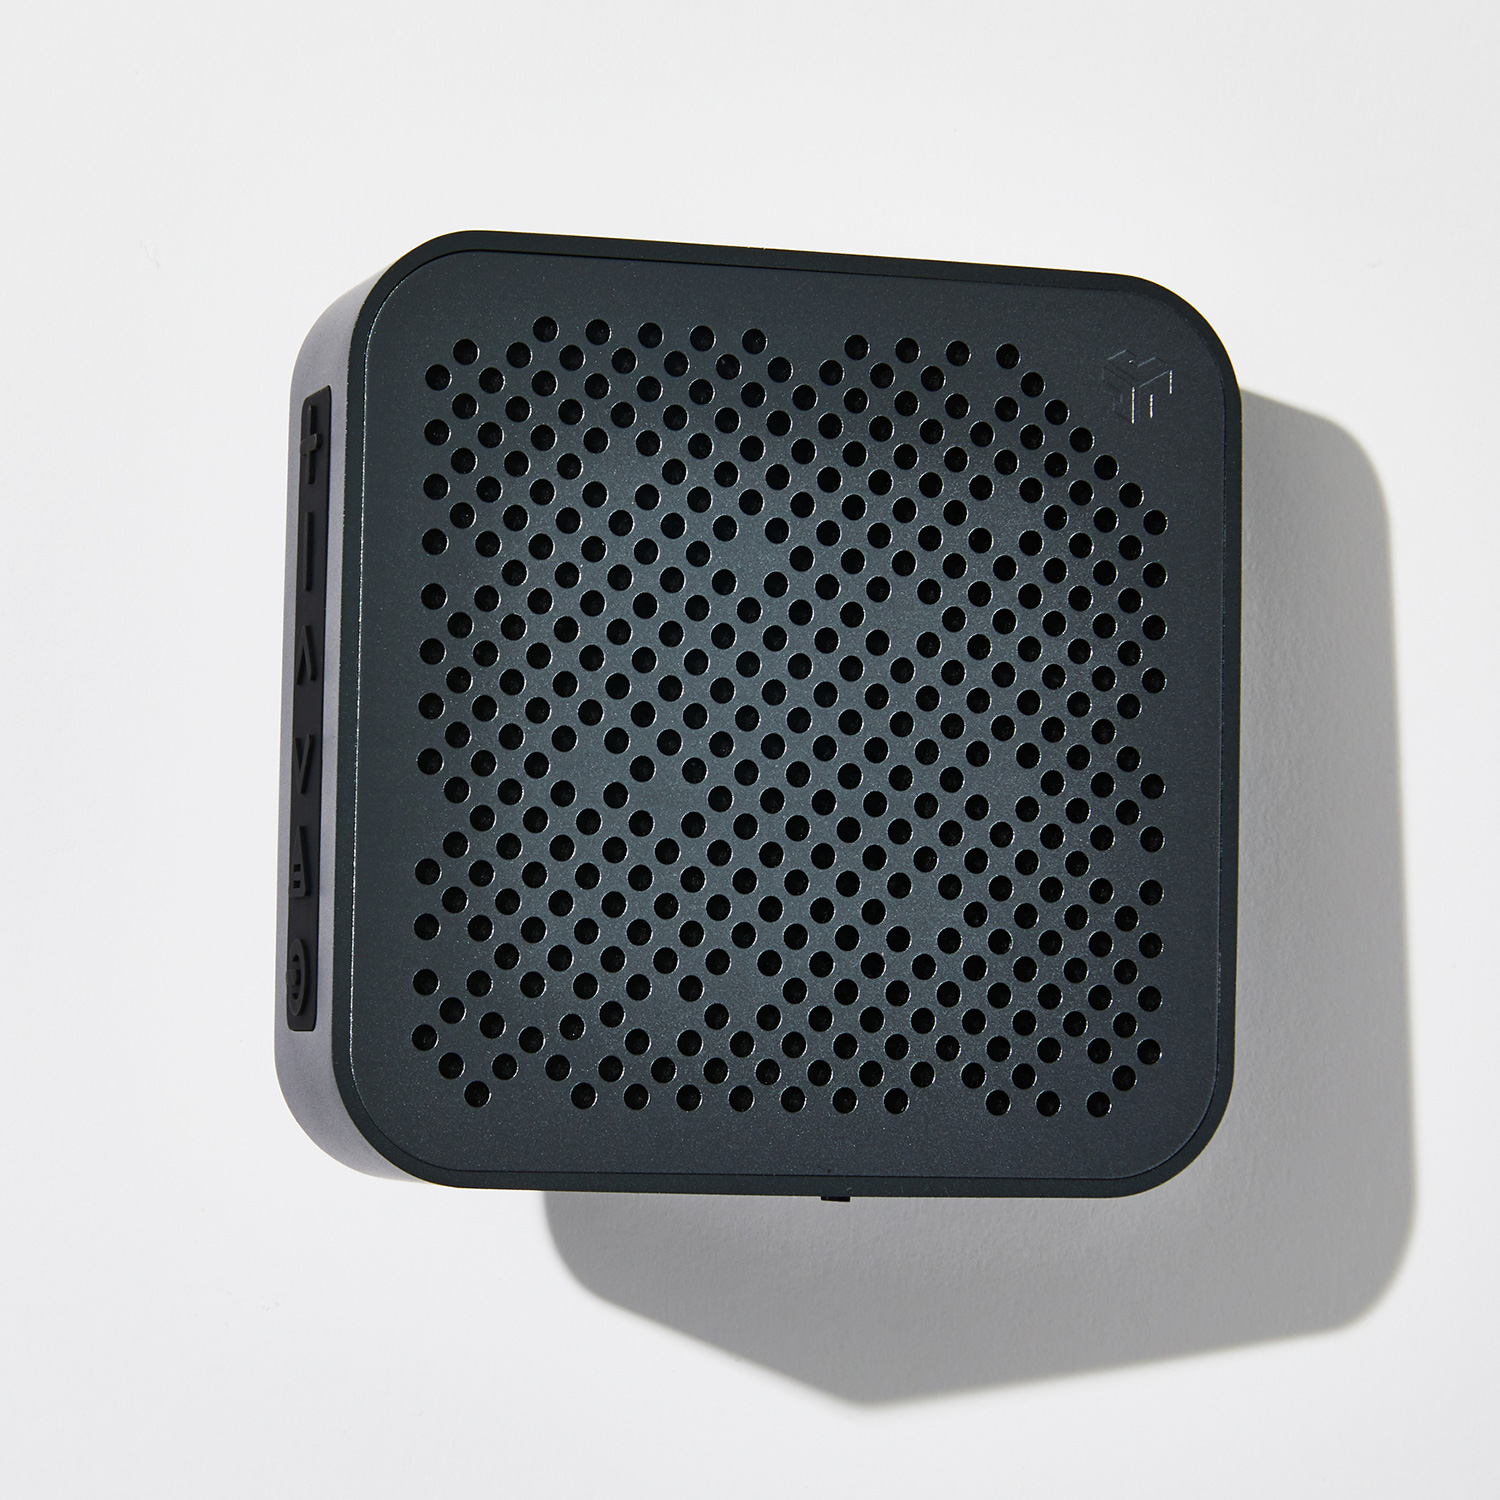 JLab Audio Crasher Mini splash-proof Bluetooth speaker